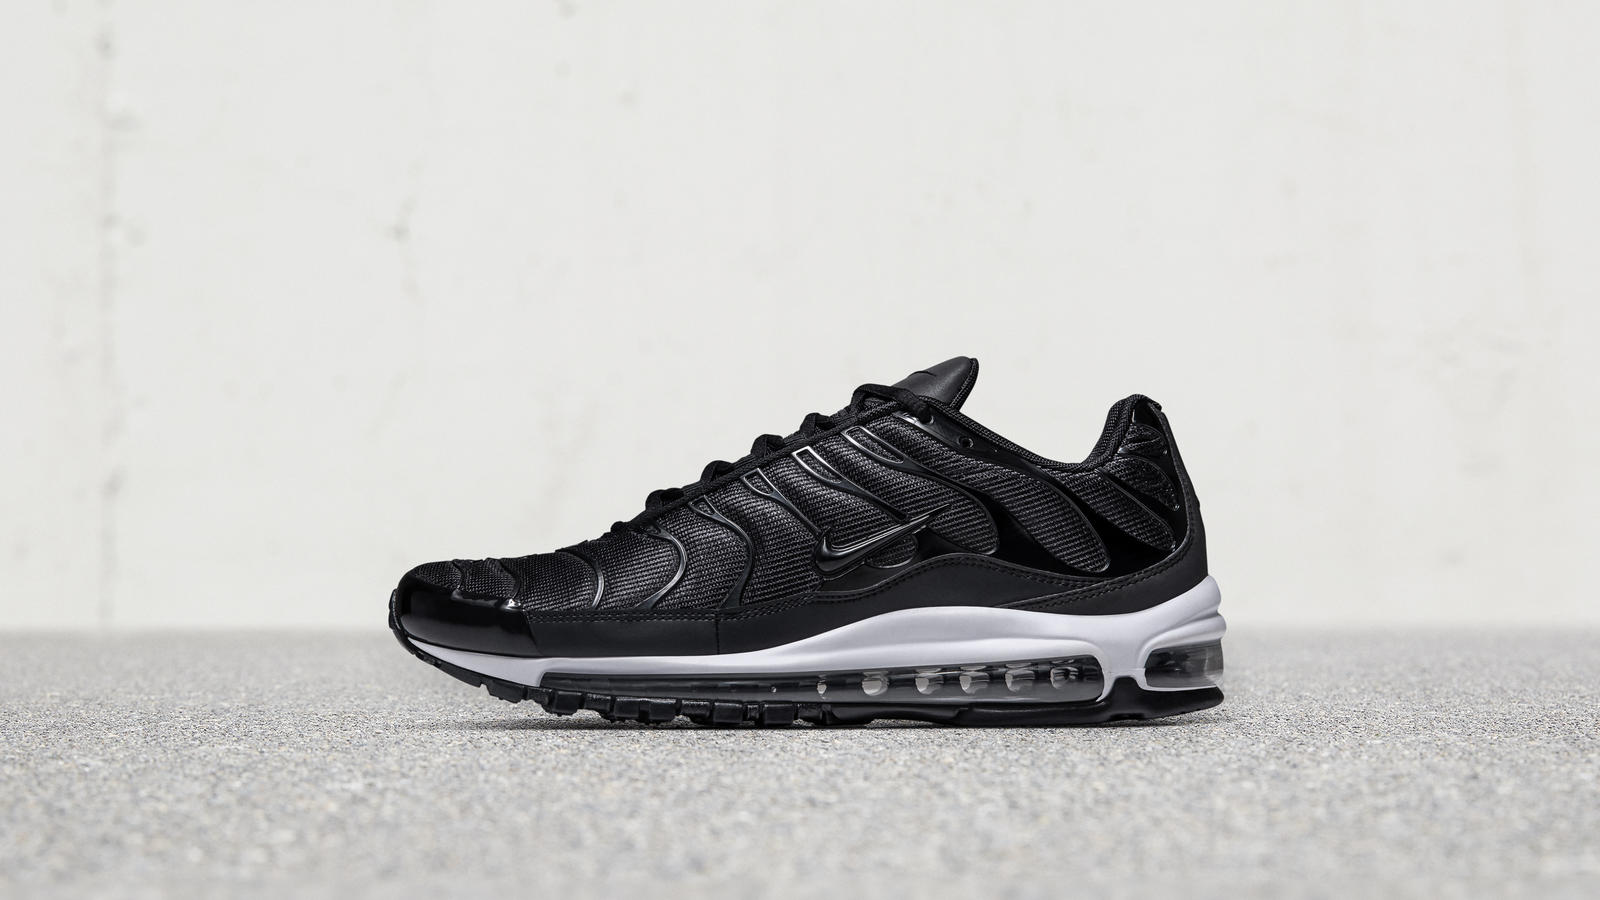 nike air max black leather white sole high vamp